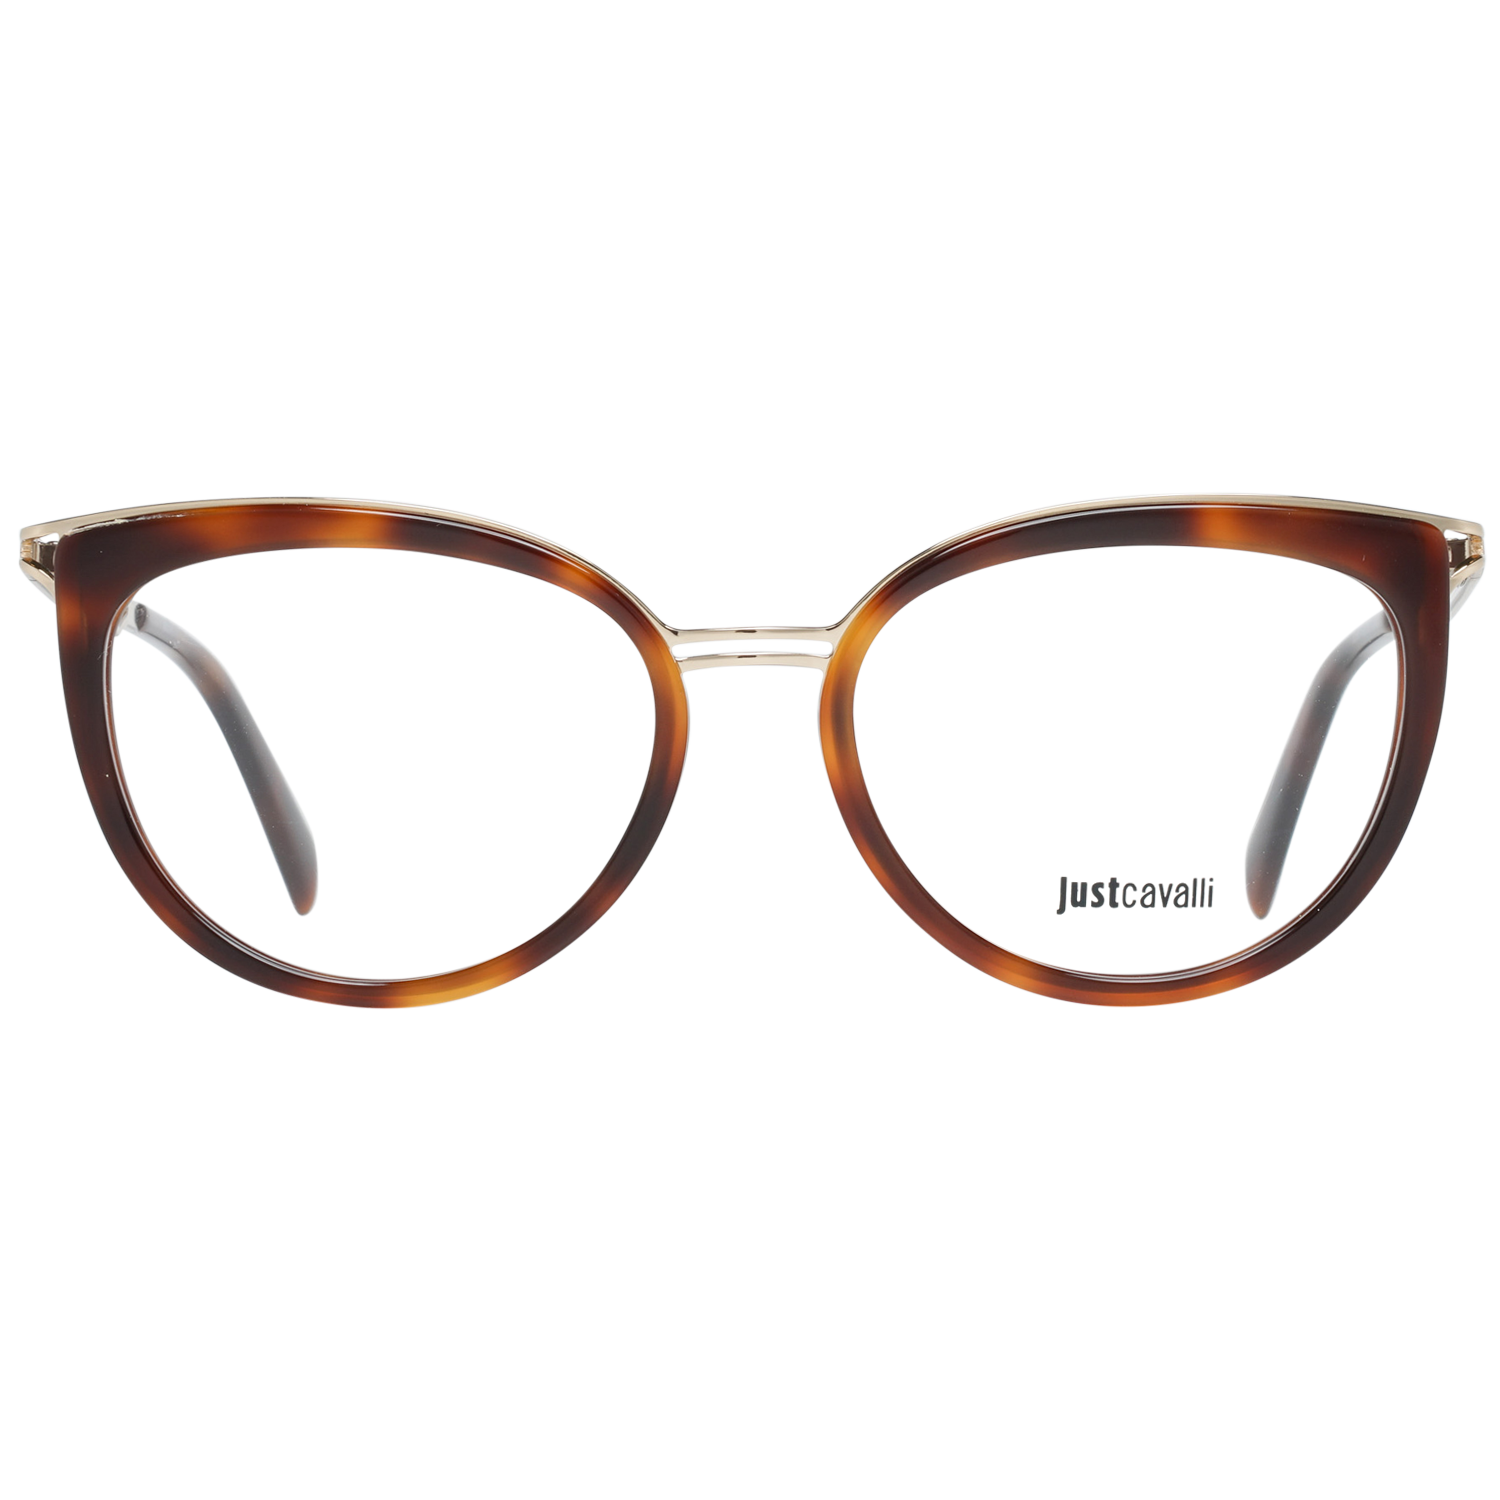 Just Cavalli Optical Frame JC0857 052 51 Brown